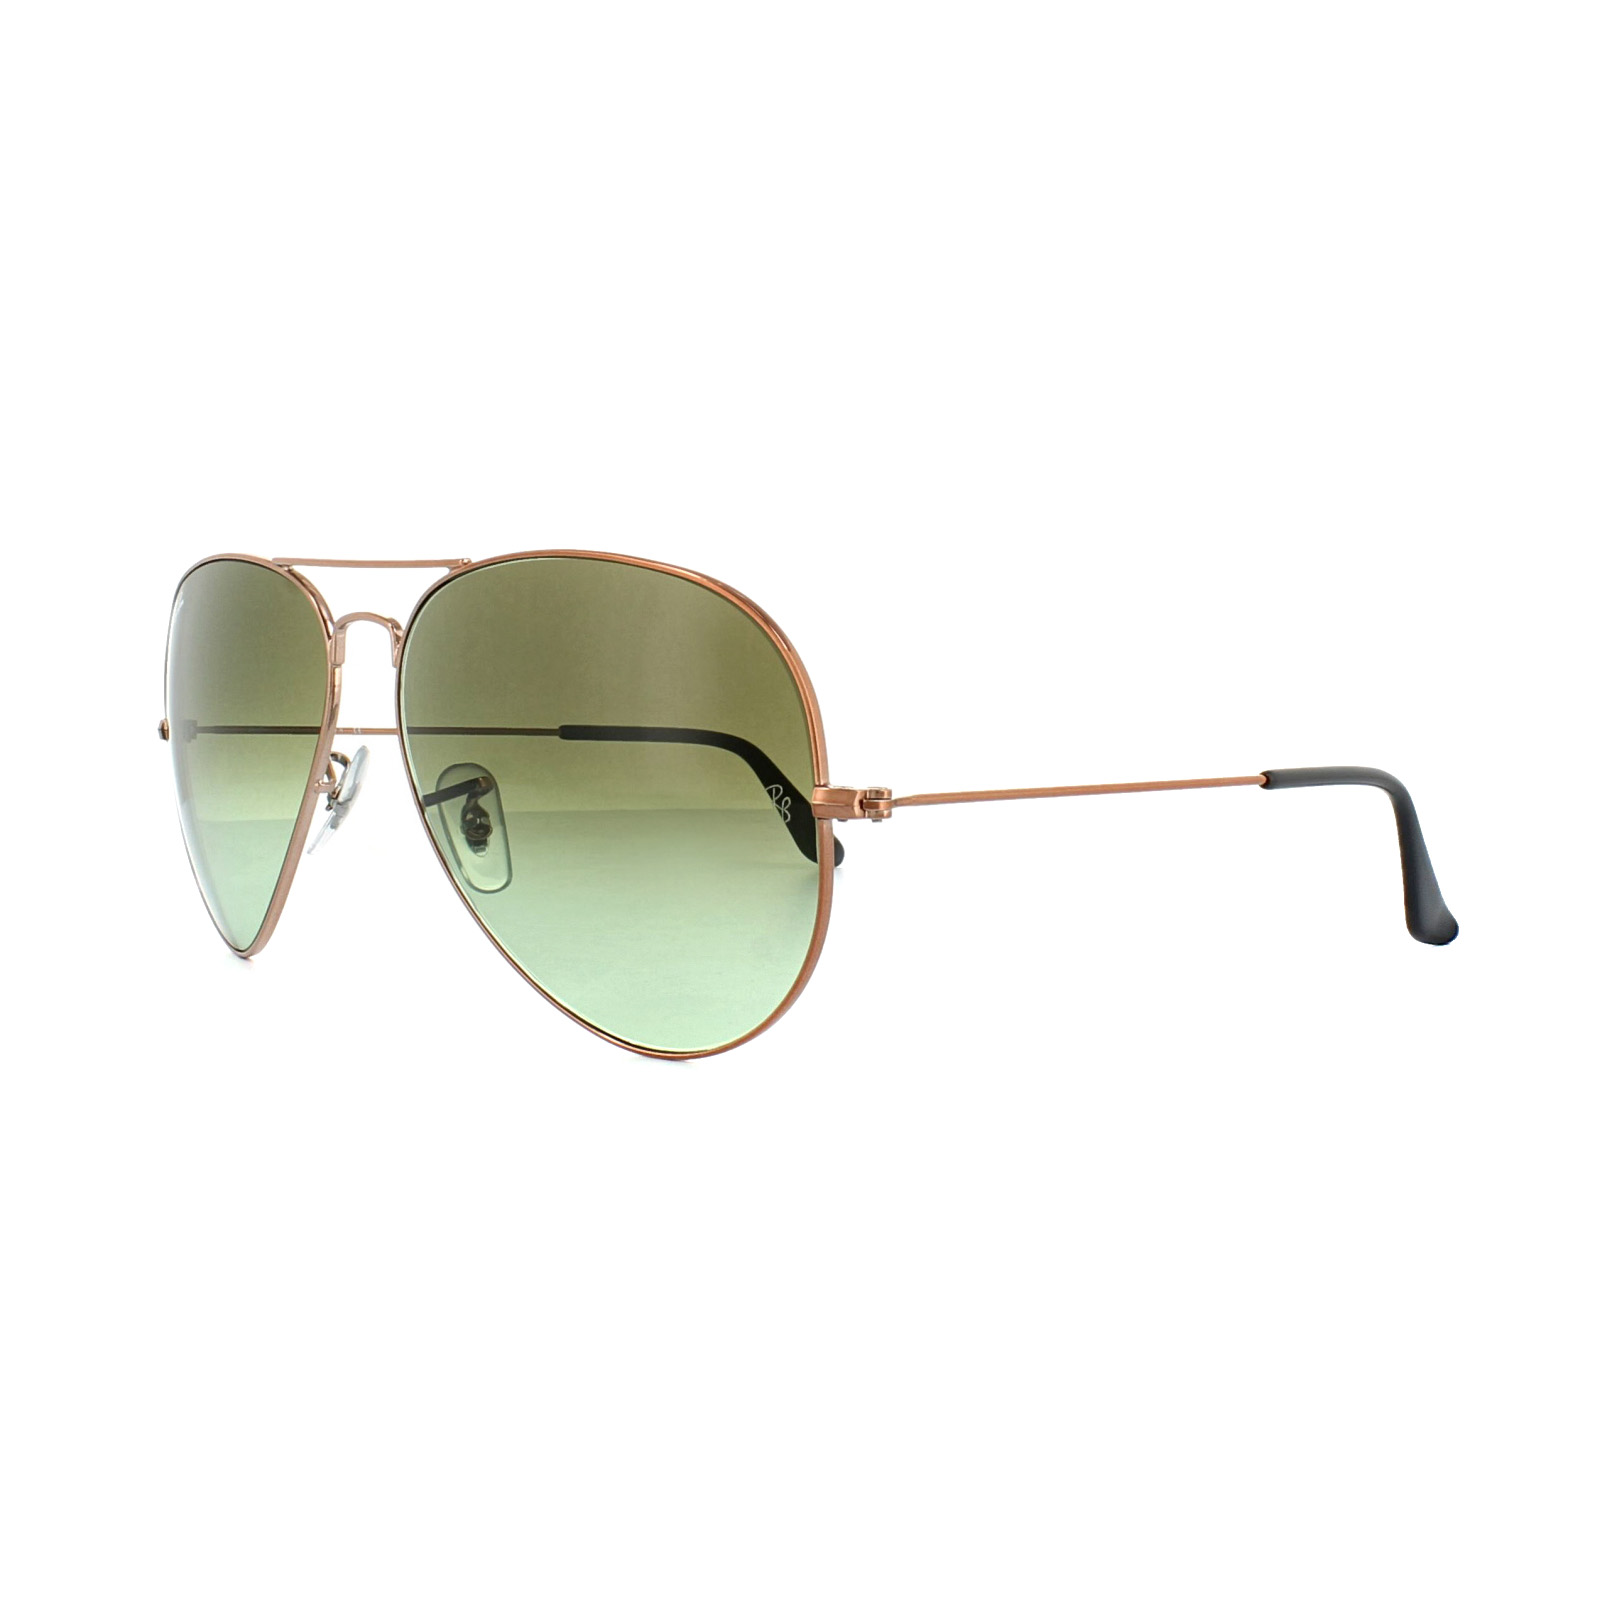 Sentinel Ray-Ban Sunglasses Large Aviator 3026 9002A6 Bronze Copper Green  Gradient. Sentinel Thumbnail 2 27460d70b3